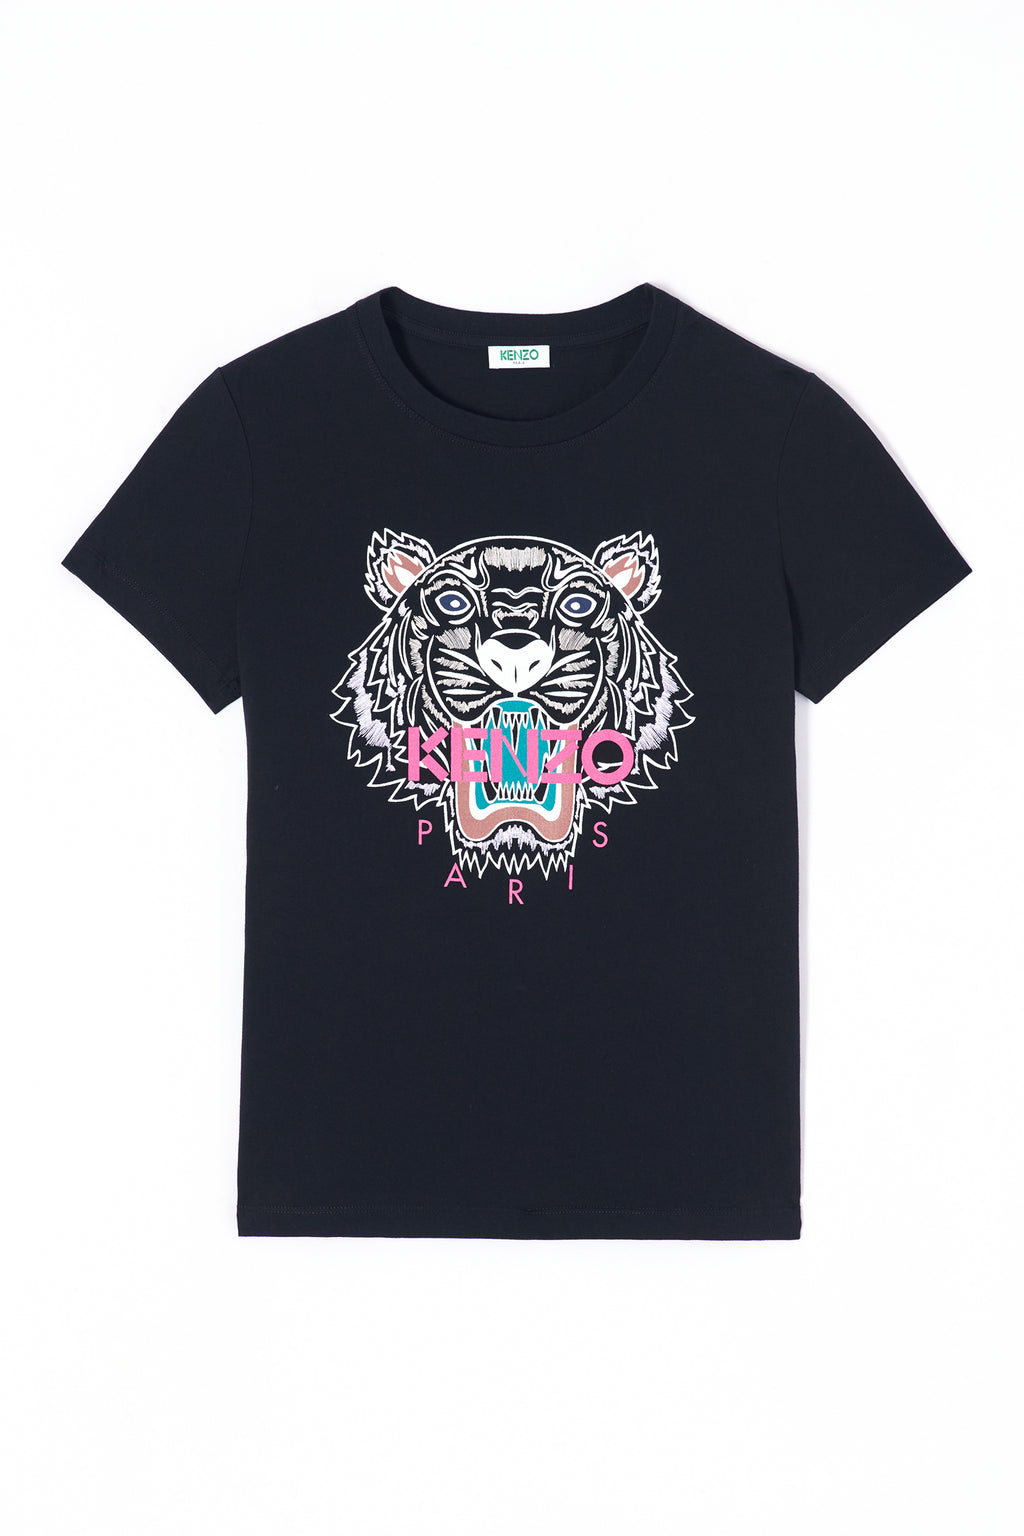 KENZO | Tiger Classic Short Sleeve T-Shirt in Black